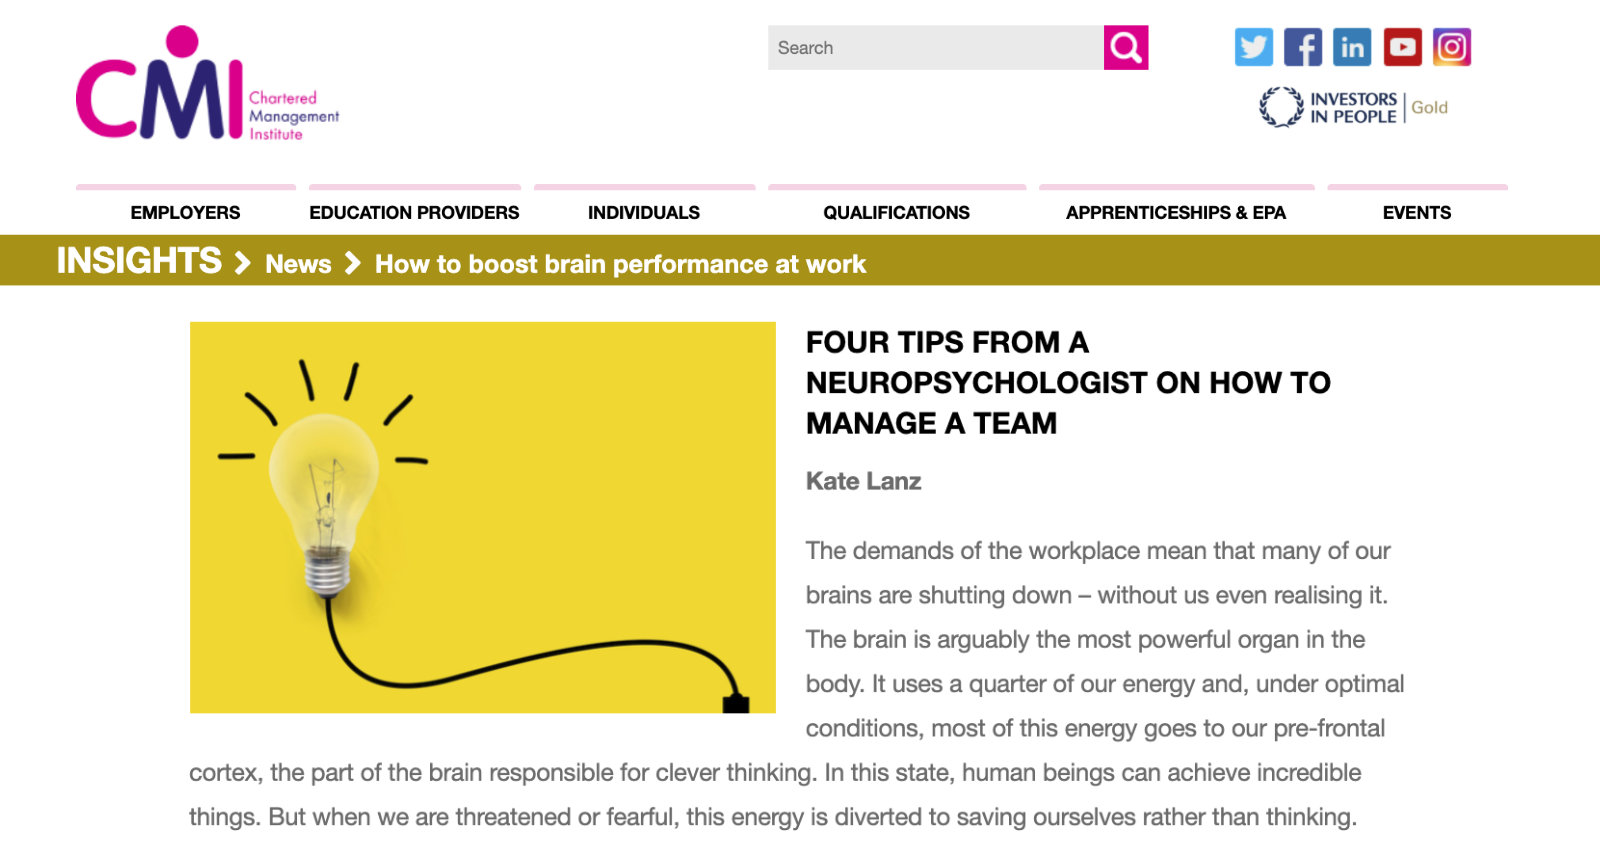 CMI Article four tips from a neuropsychologist on how to manage a team